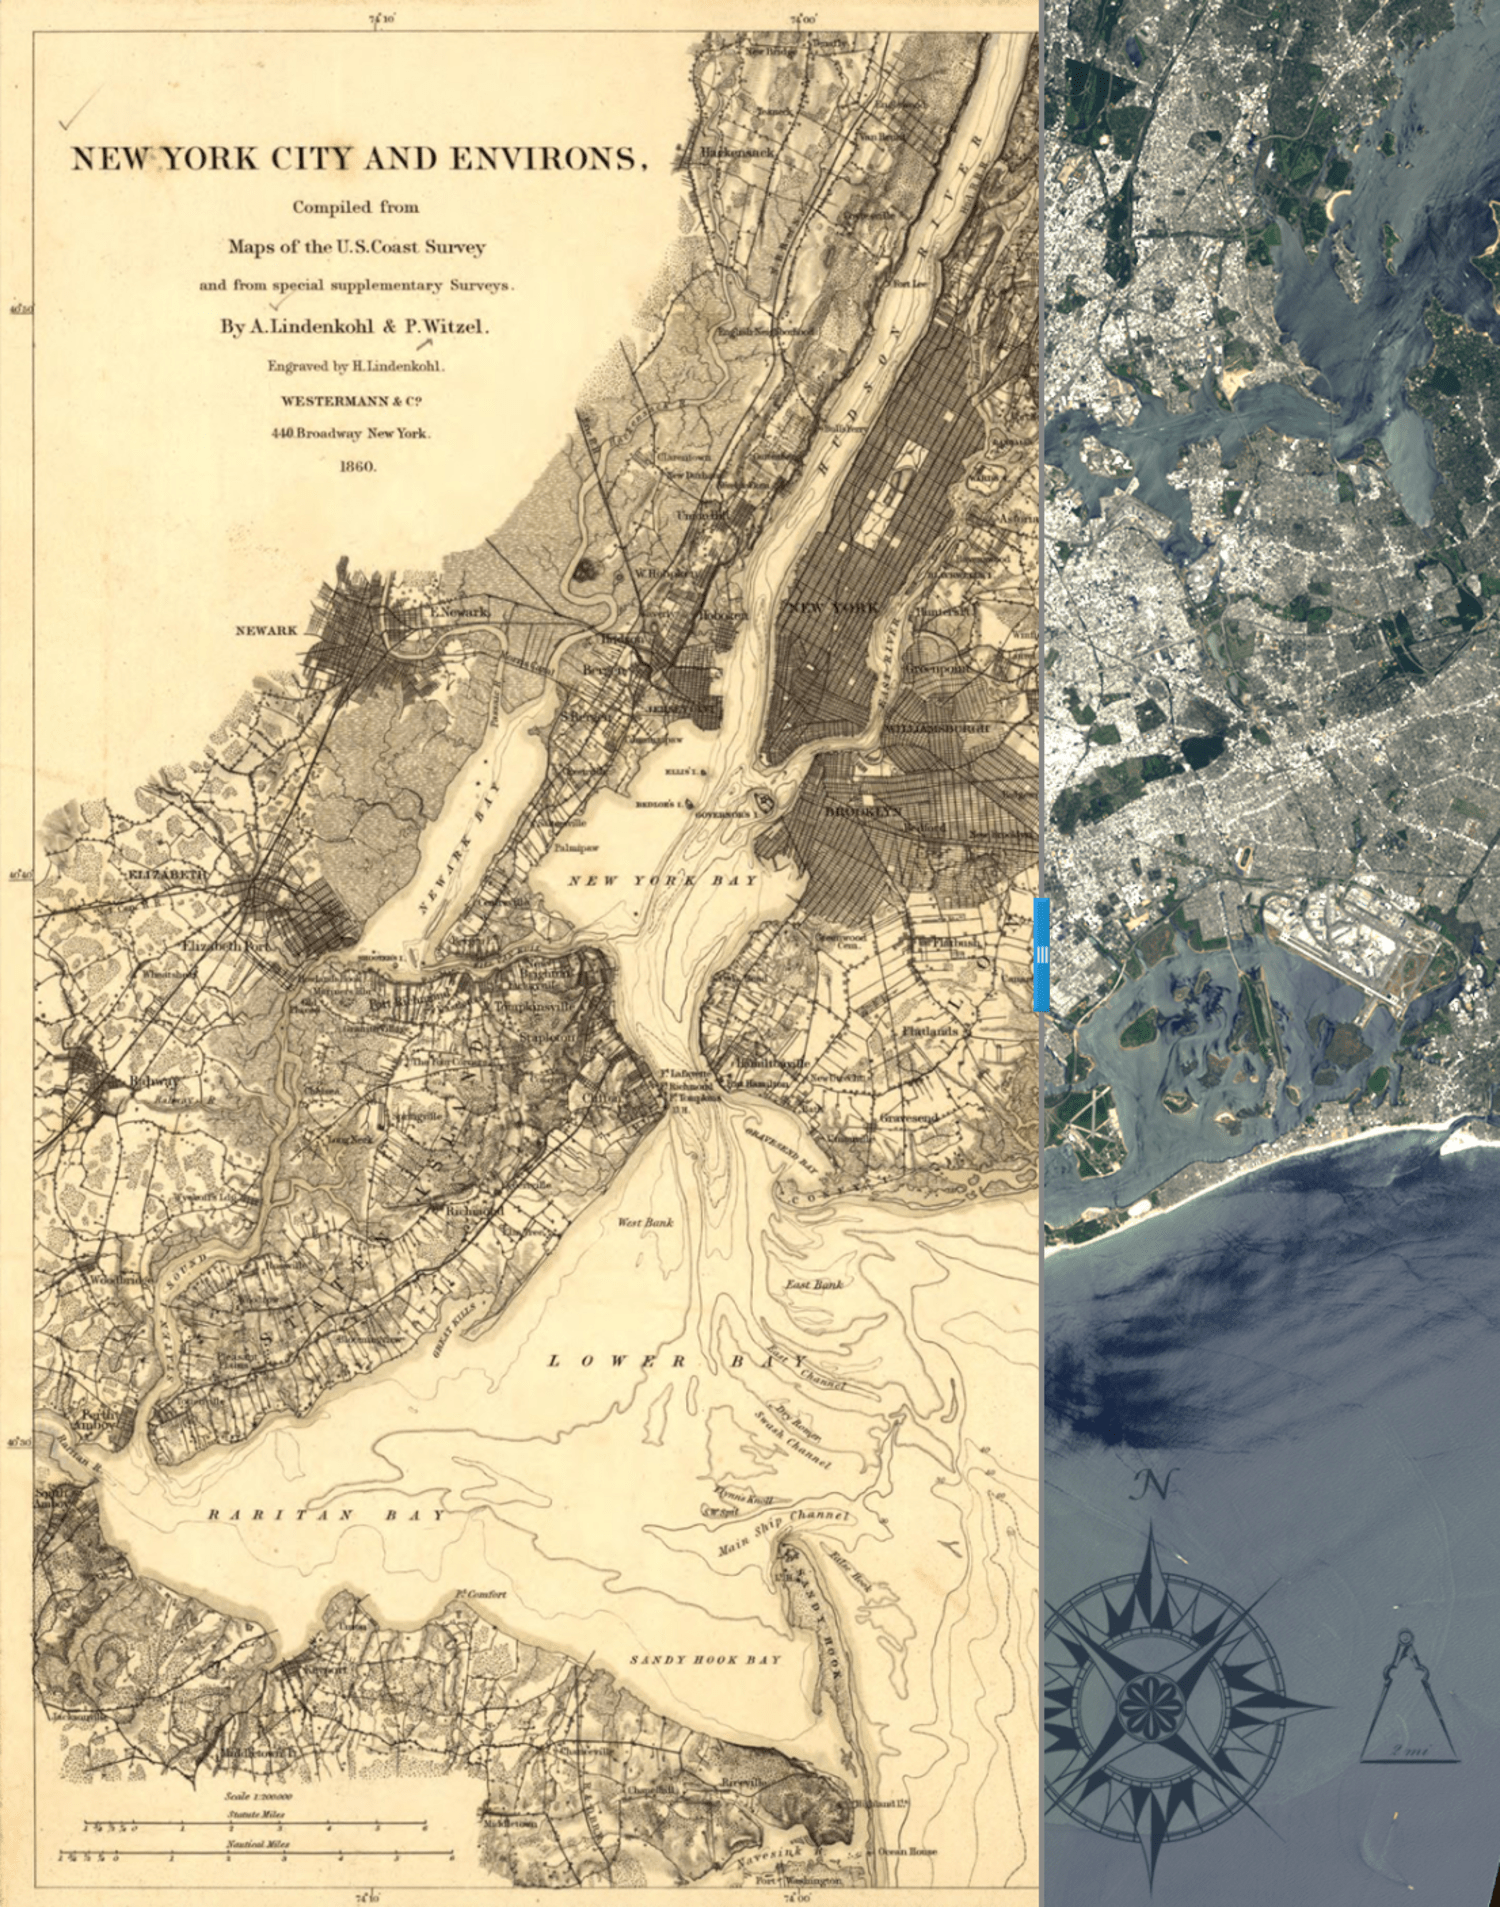 Check Out This Vintage Map of New York City From 1860 Overlaid With     1860 New York City Map vs  2013 NASA Satellite Photo